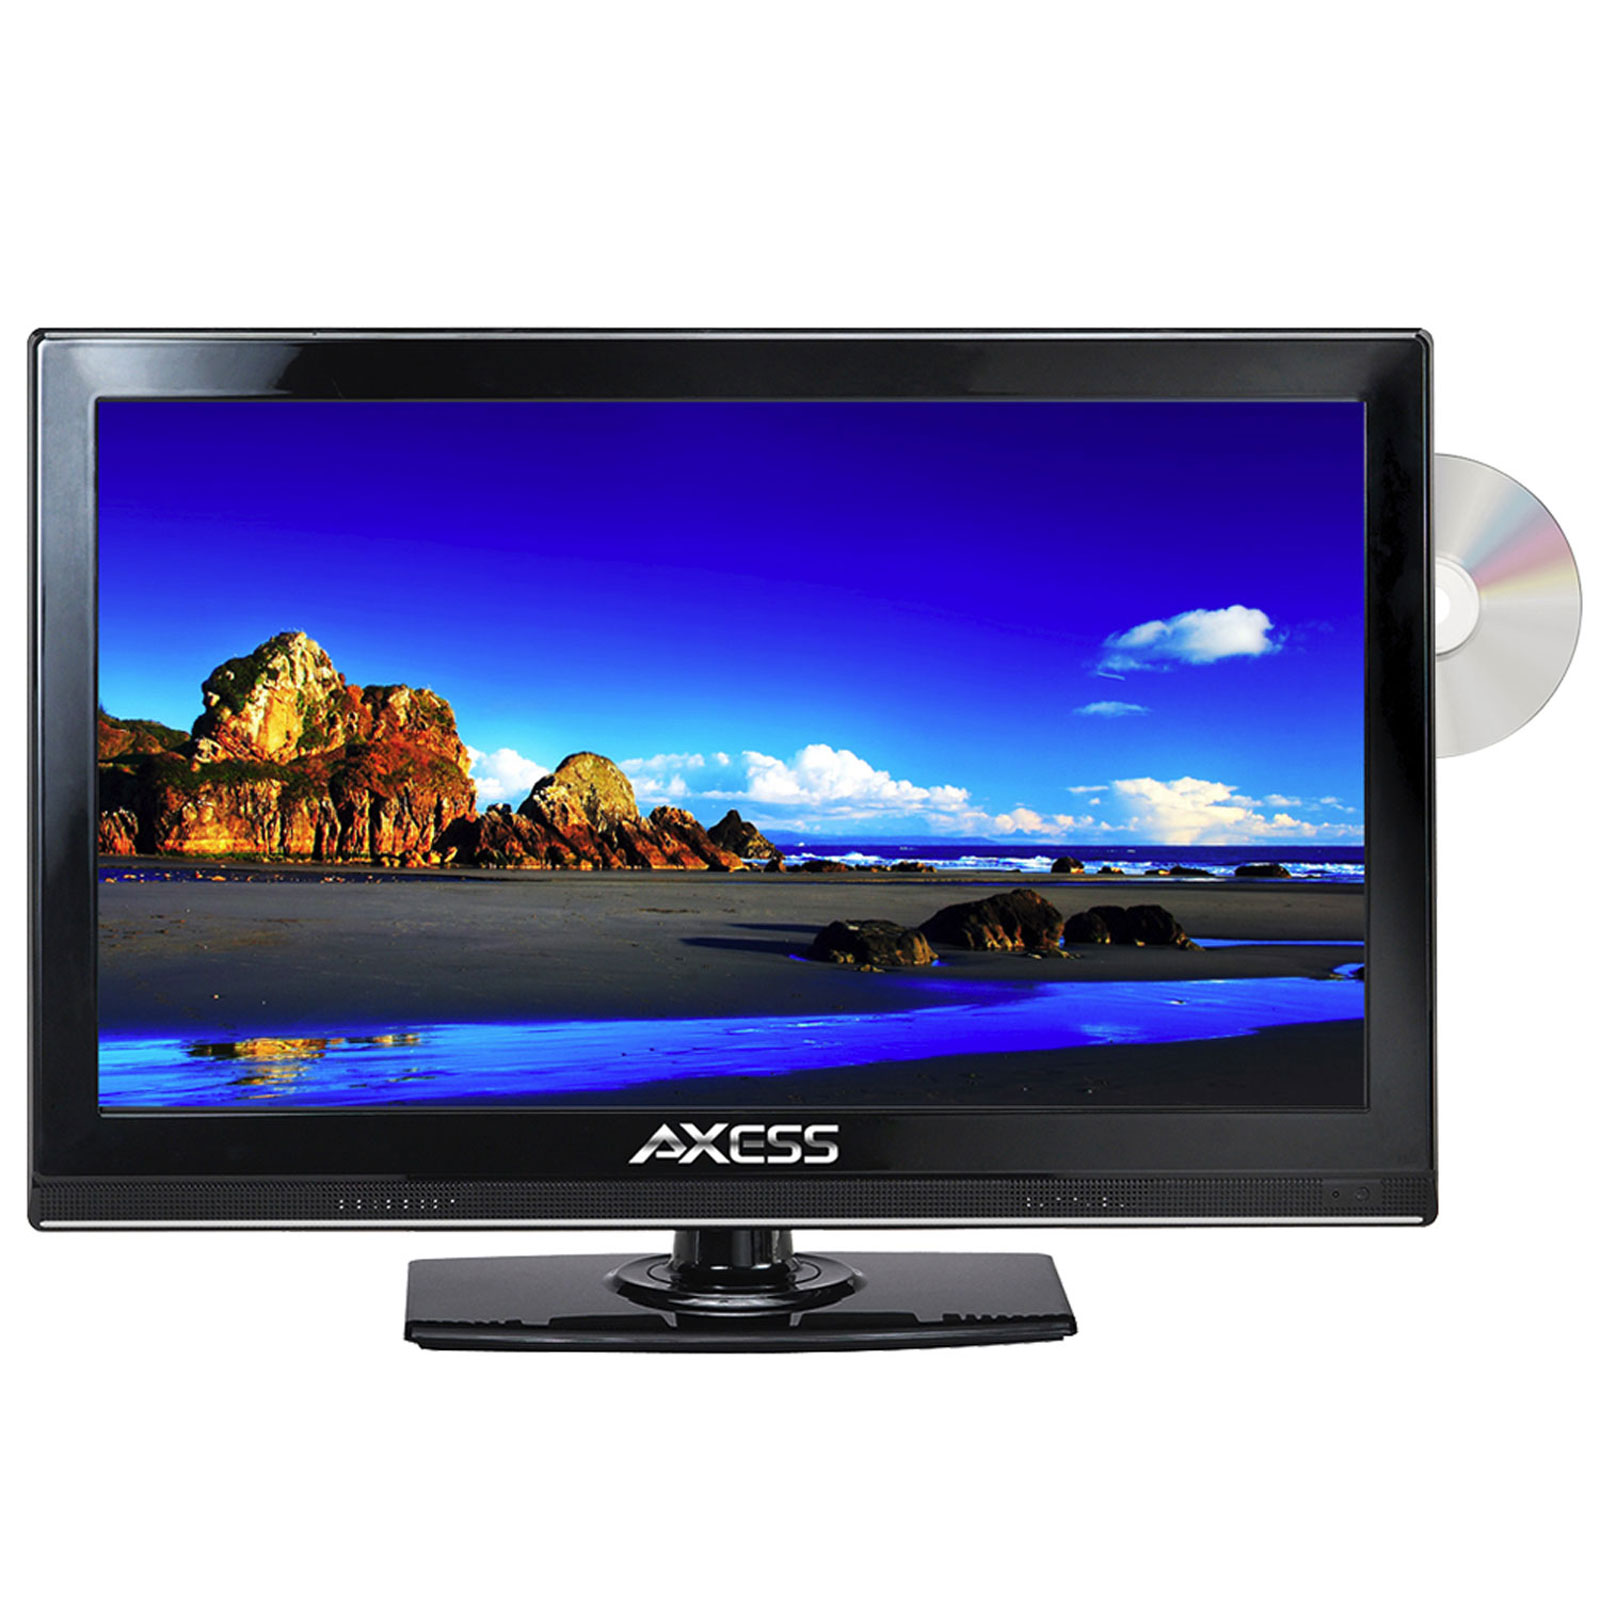 axess 15 4 class hd 720p led tv with built in dvd tvd1801 15